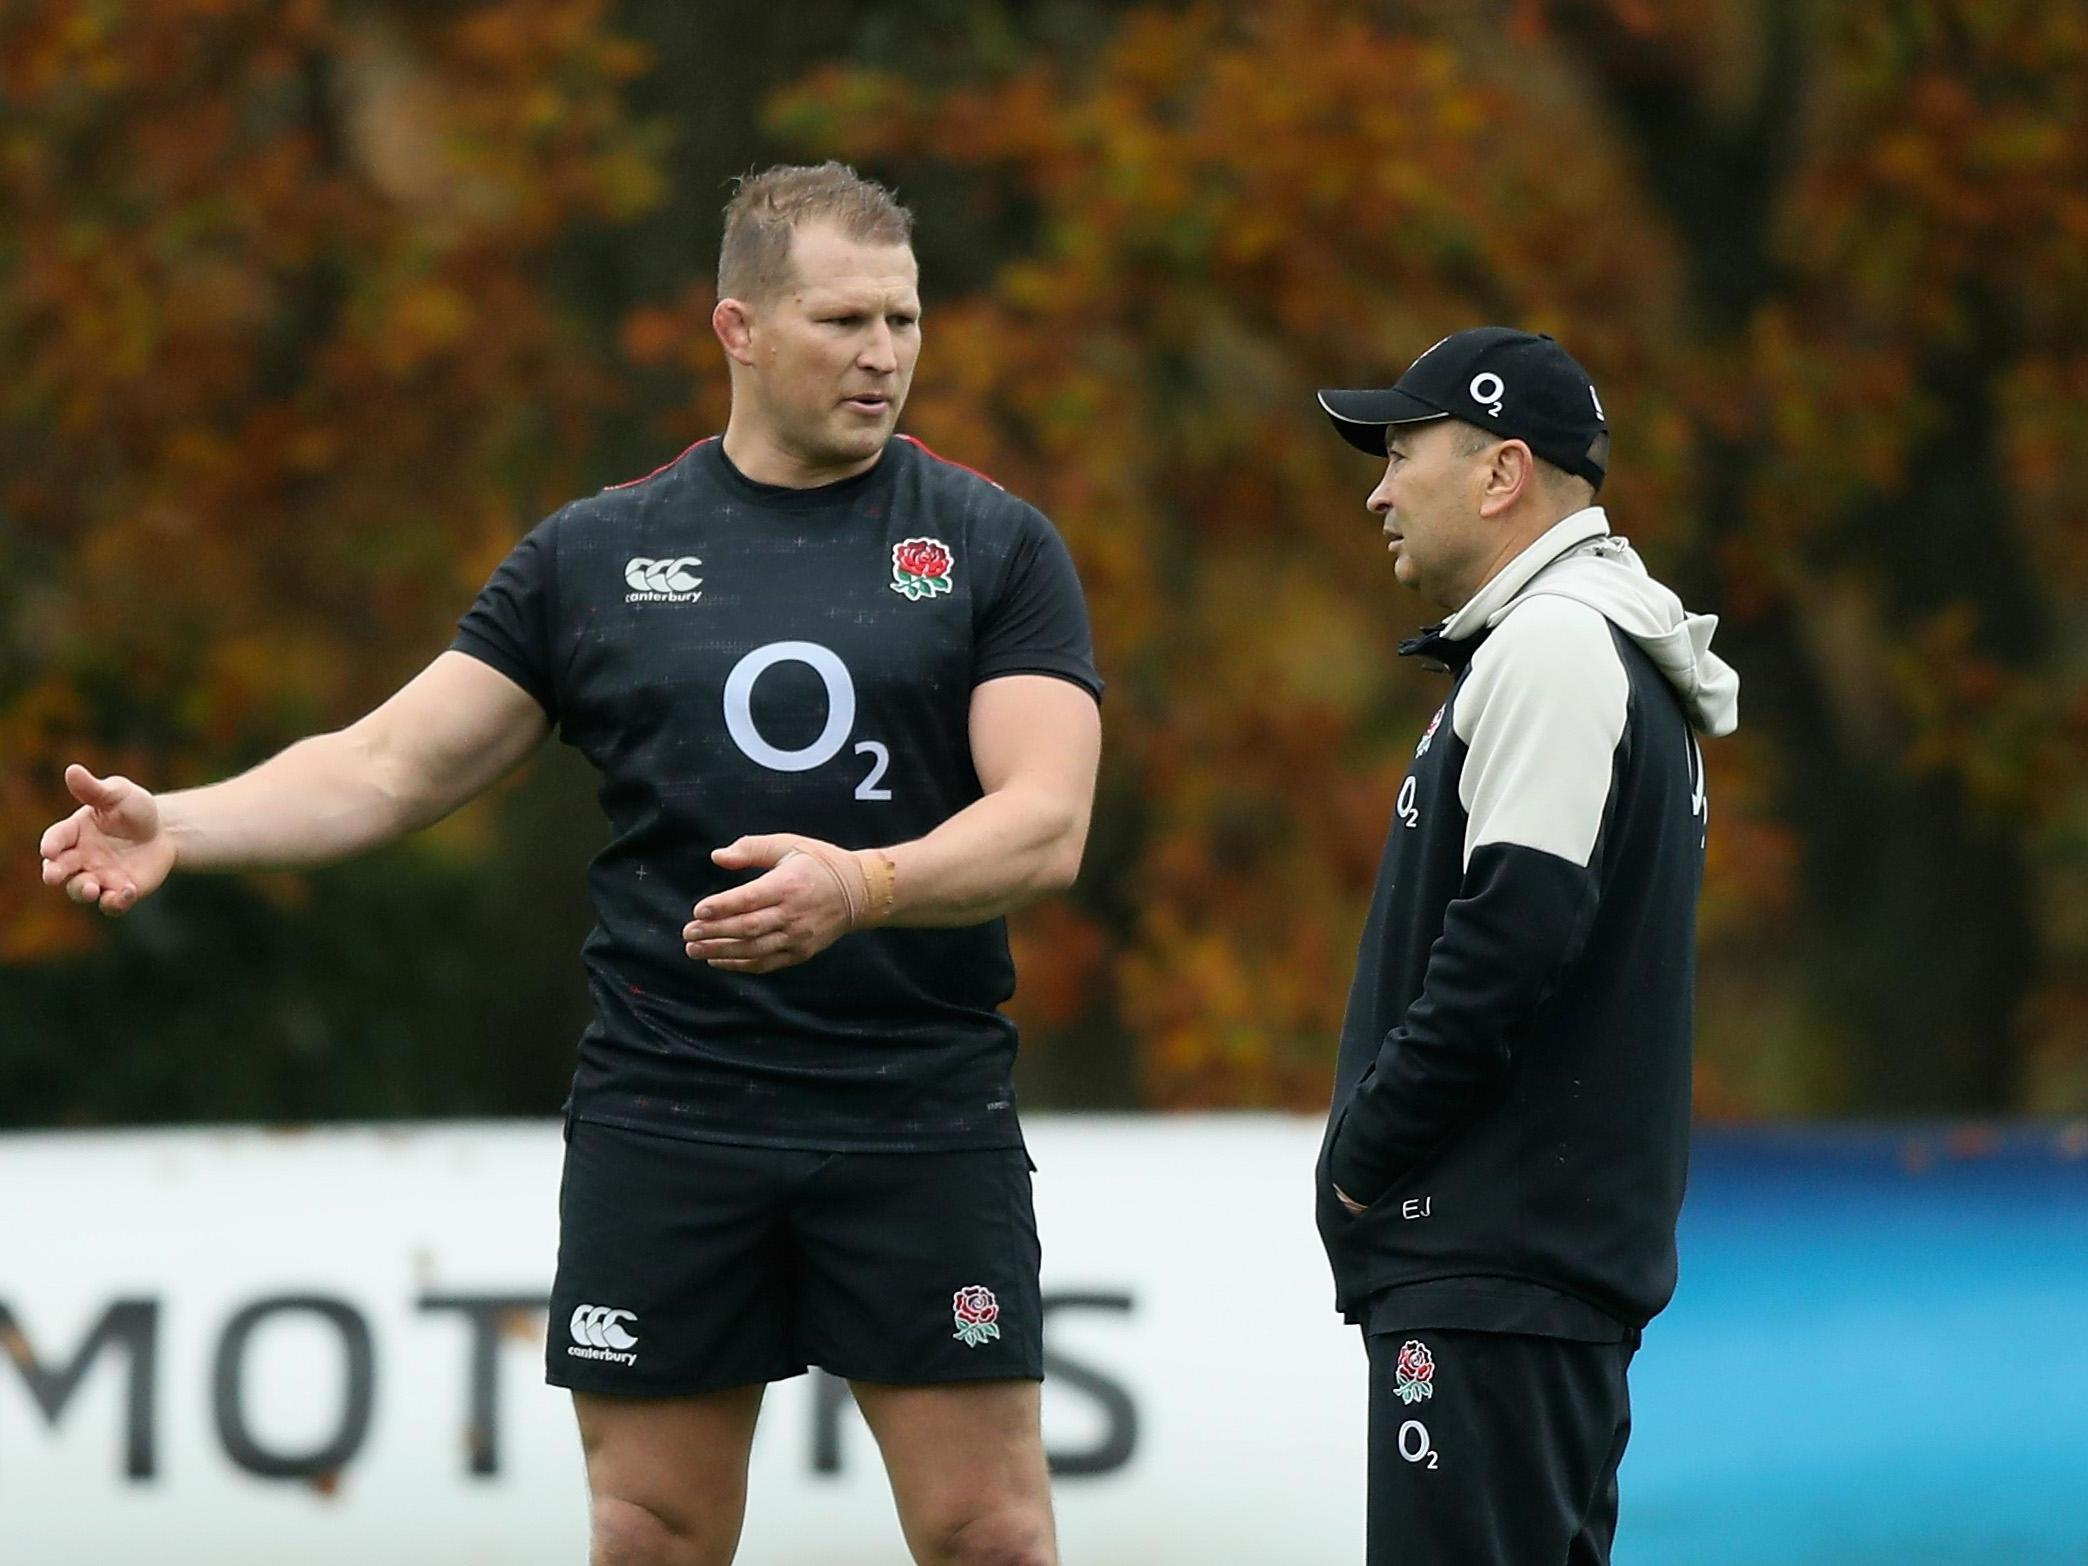 Rugby World Cup 2019: Dylan Hartley, Mike Brown and Danny Cipriani speak out over England snubs